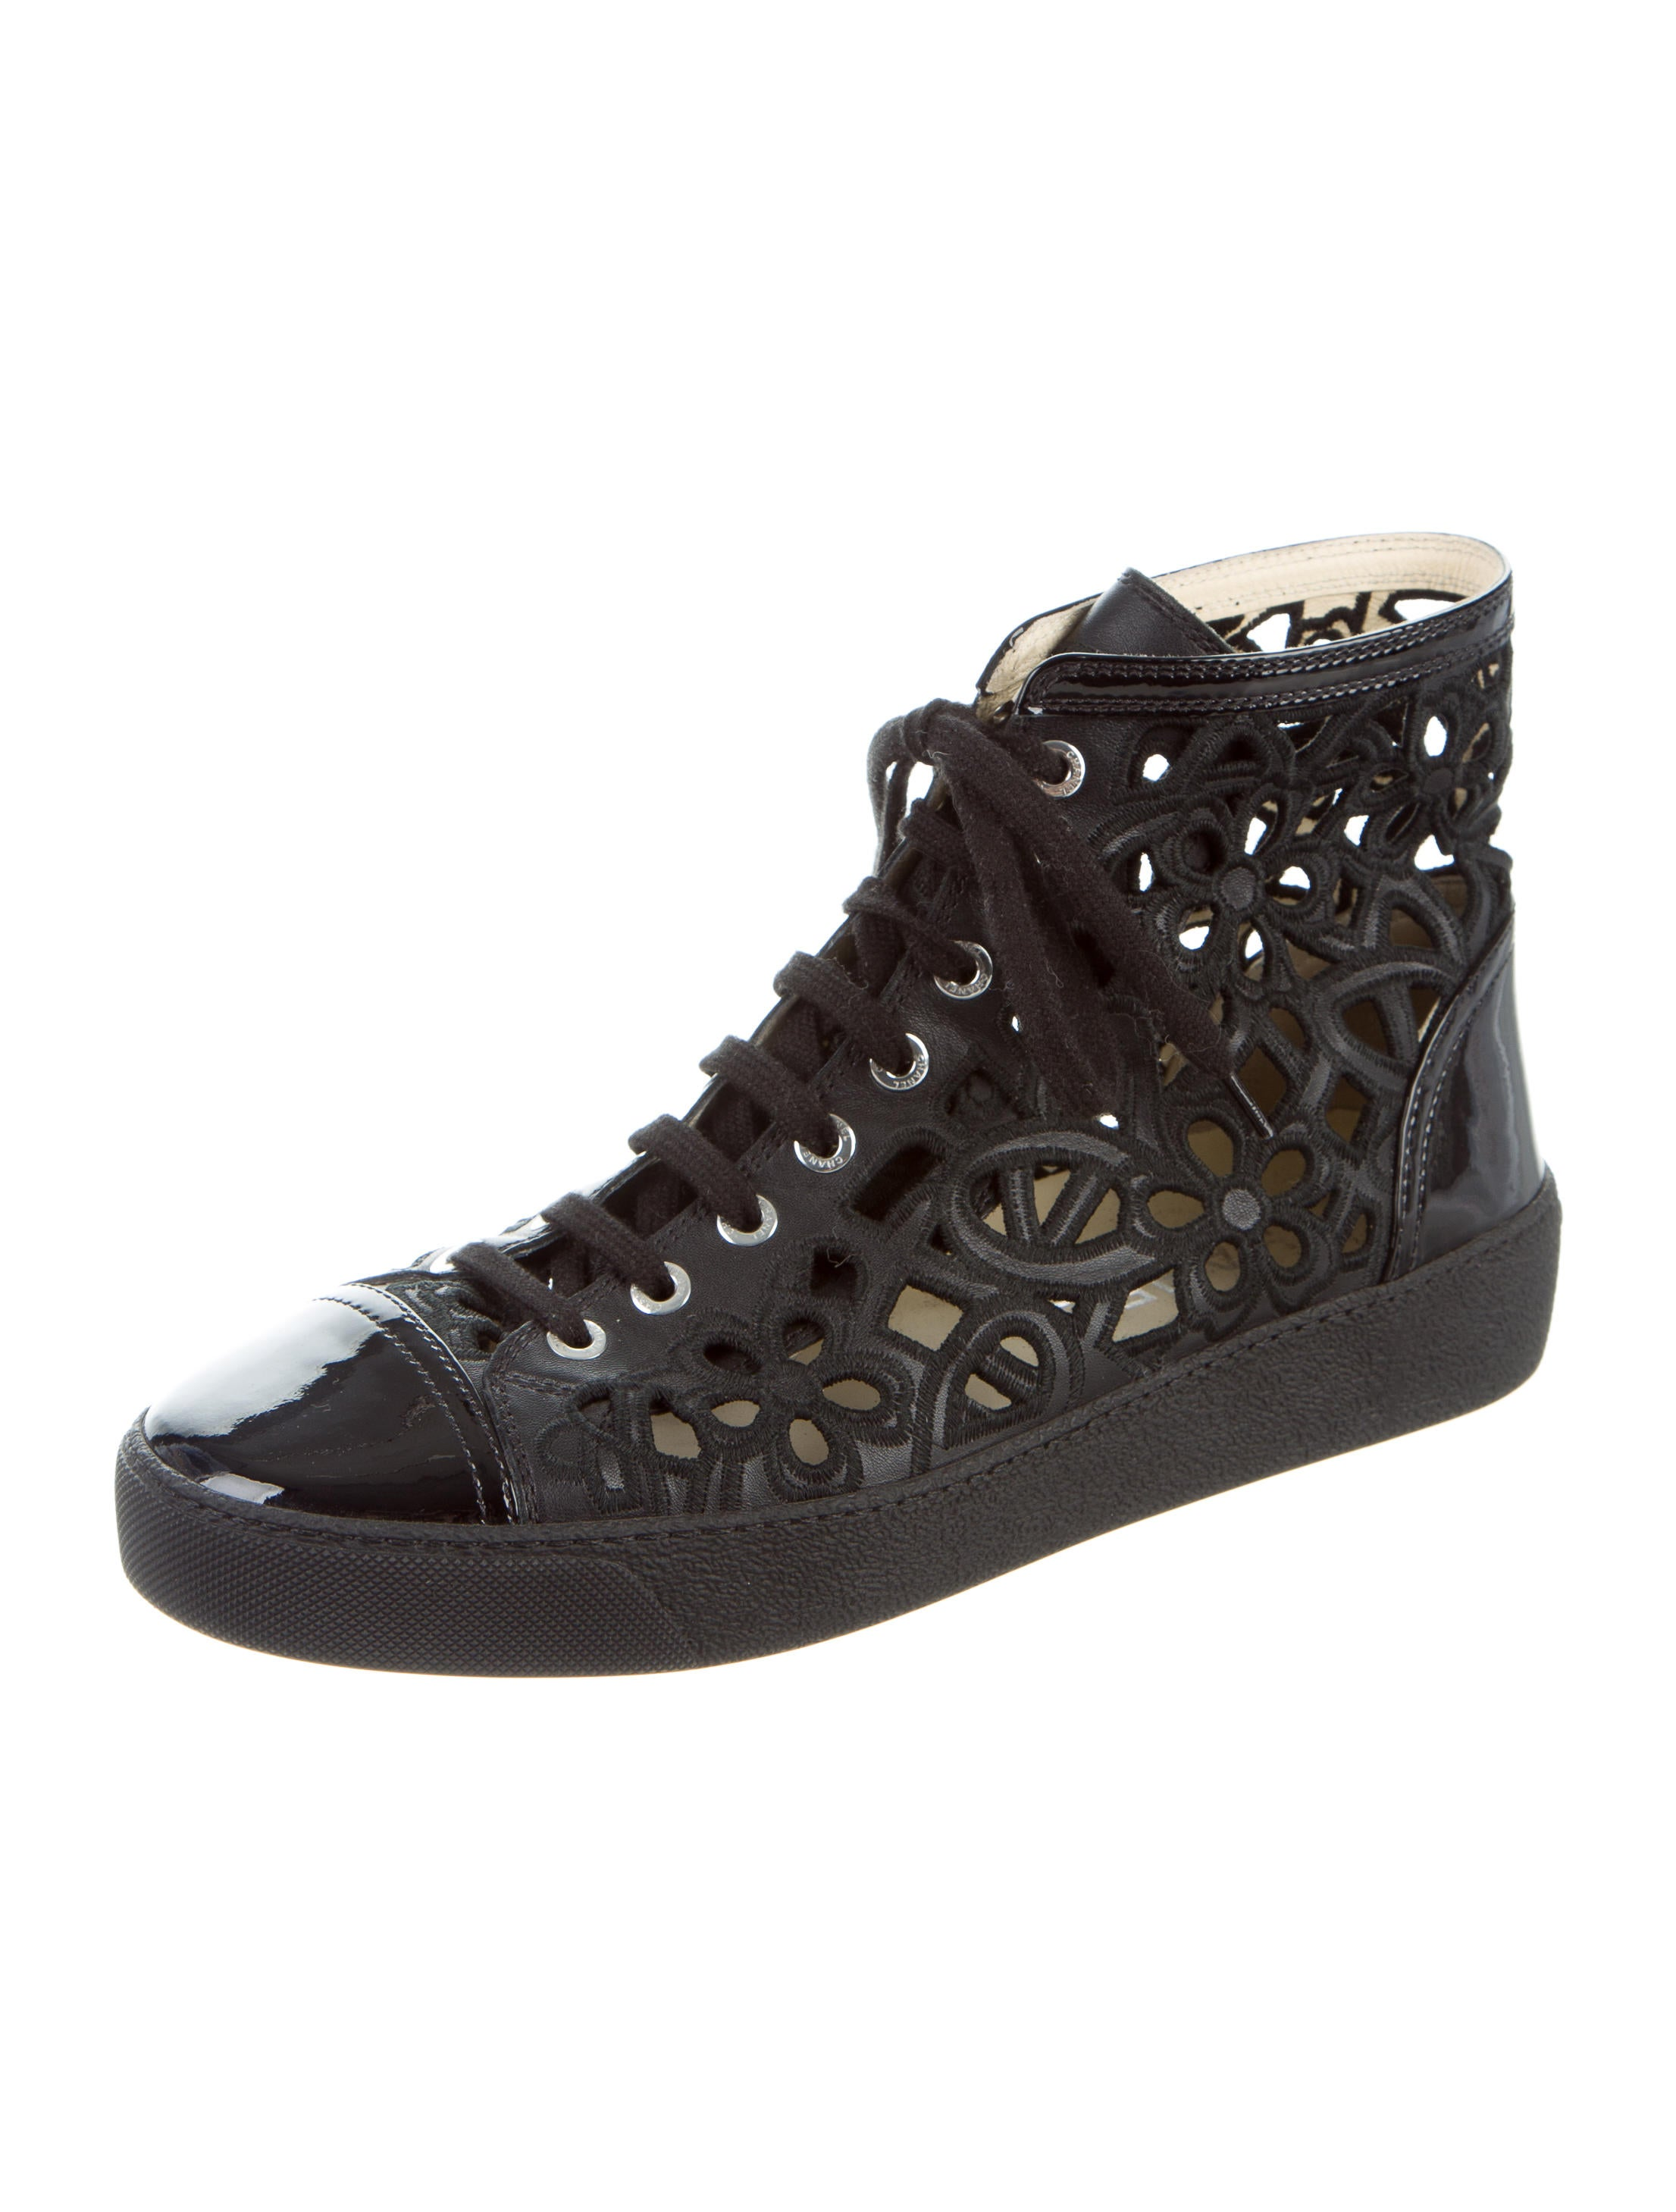 Chanel Cutout High Top Sneakers Shoes Cha161156 The